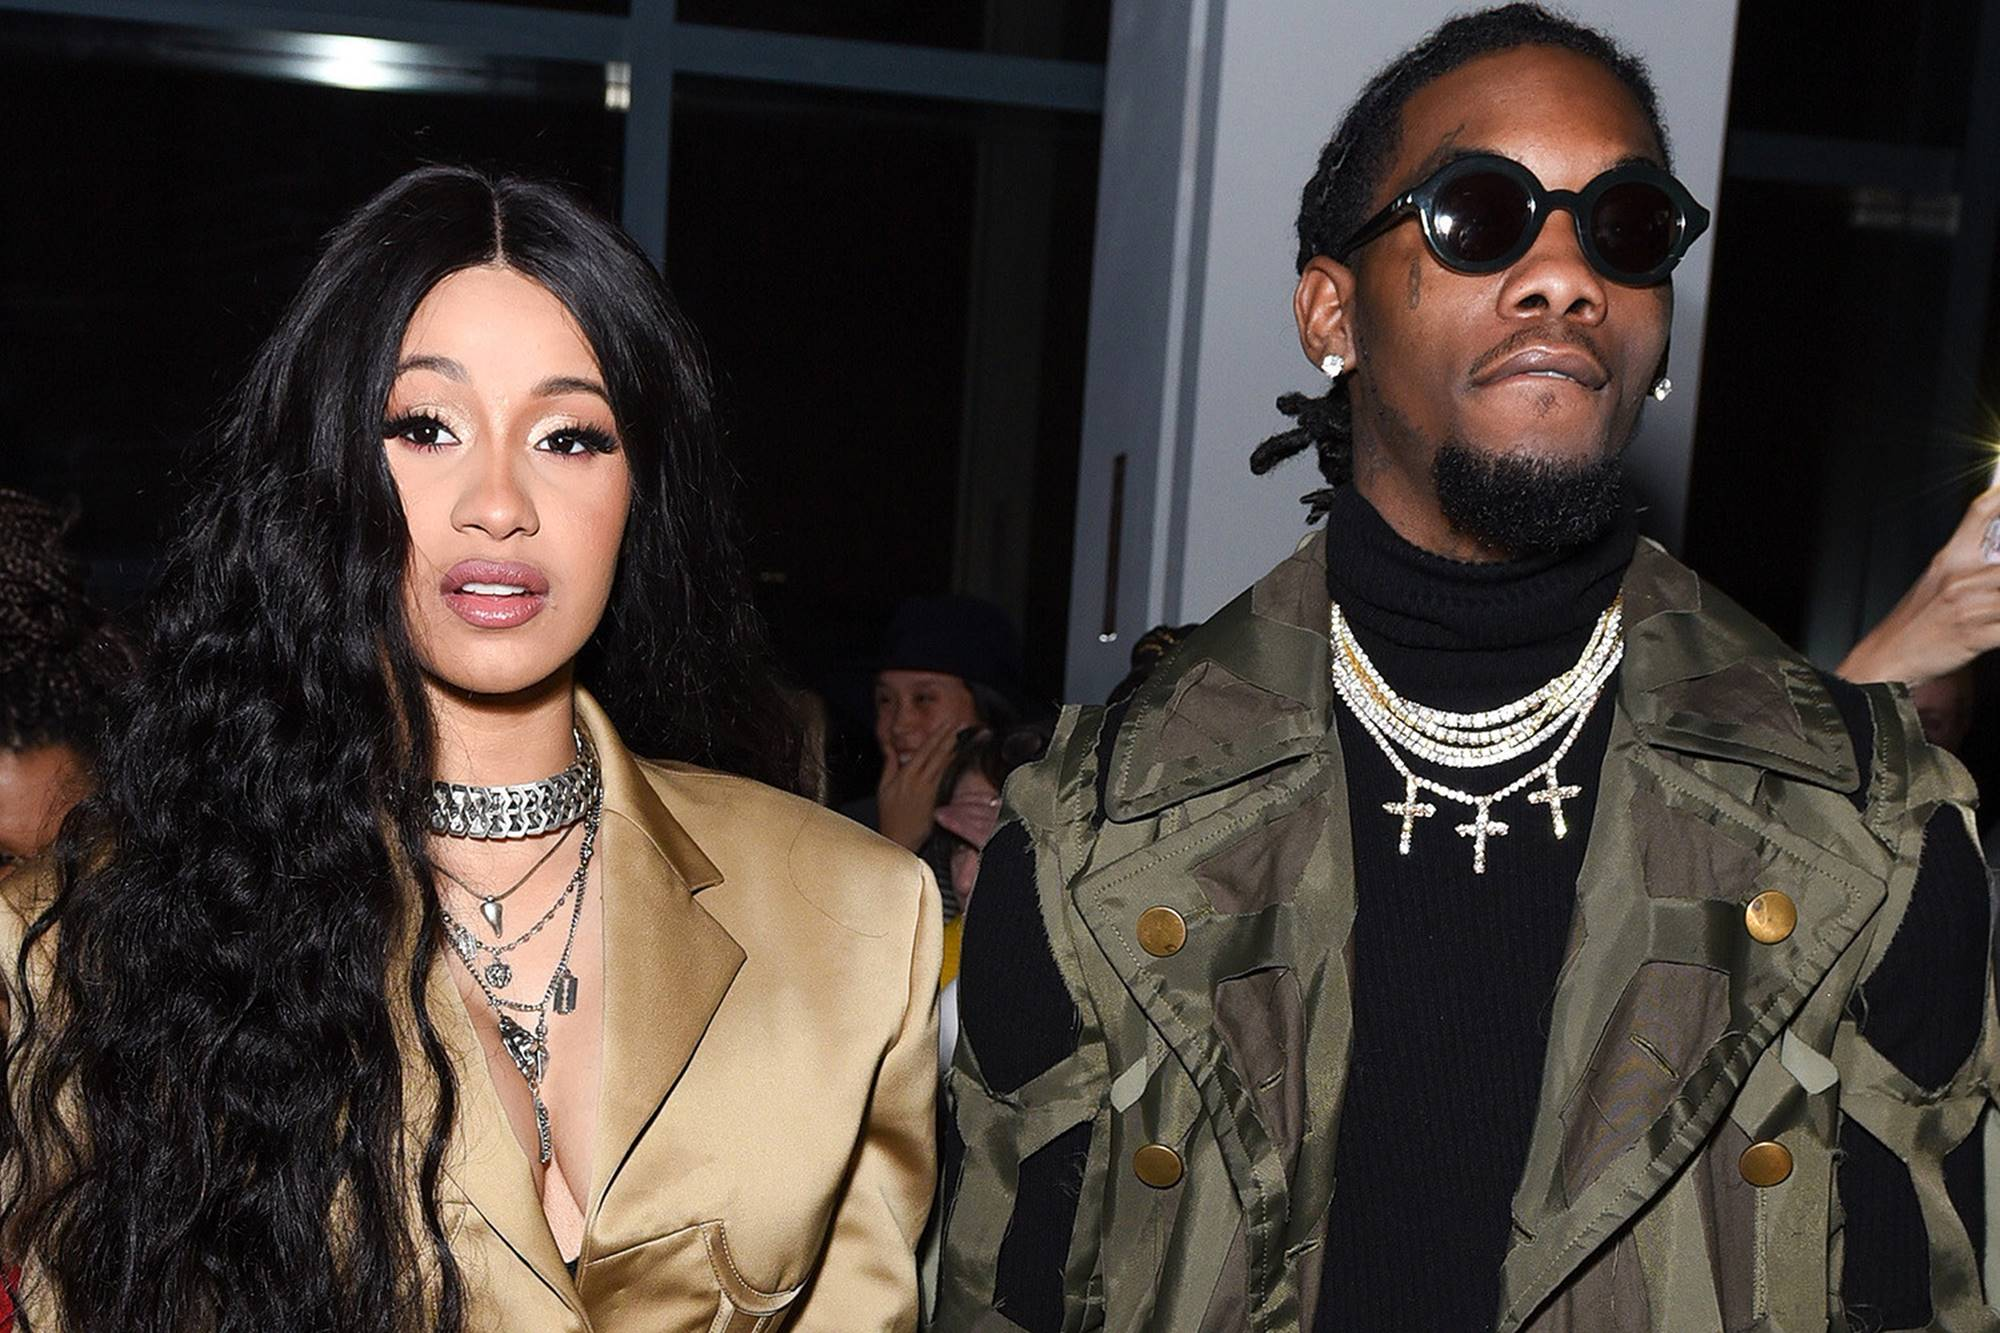 Offset Interrupts Cardi B on Stage, Asks Her to Take Him Back